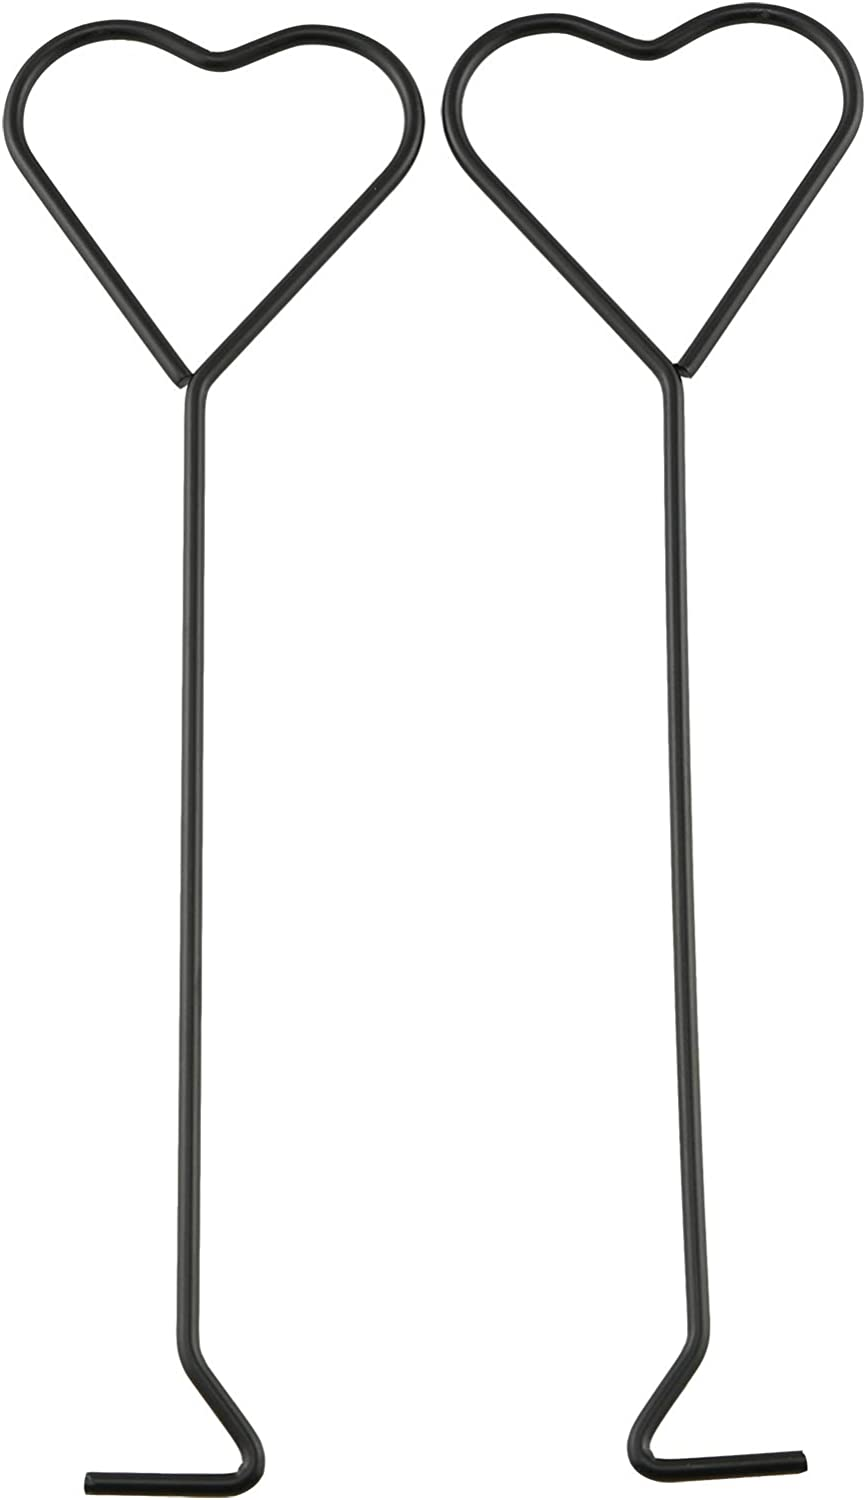 HJ Garden 2PCS Candle Hook Tool Stainless Steel Put Out Extinguish Candle Wick Dipper Snuffer Hook, Black